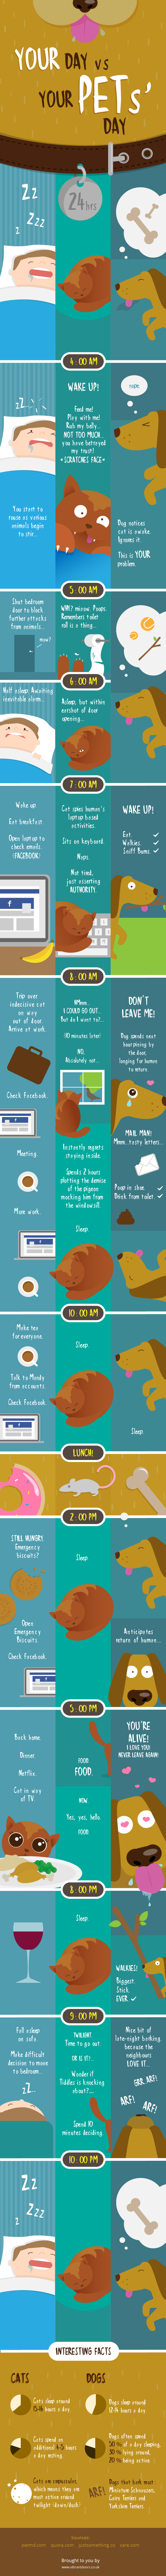 What Your Pets Do During the Day Infographic